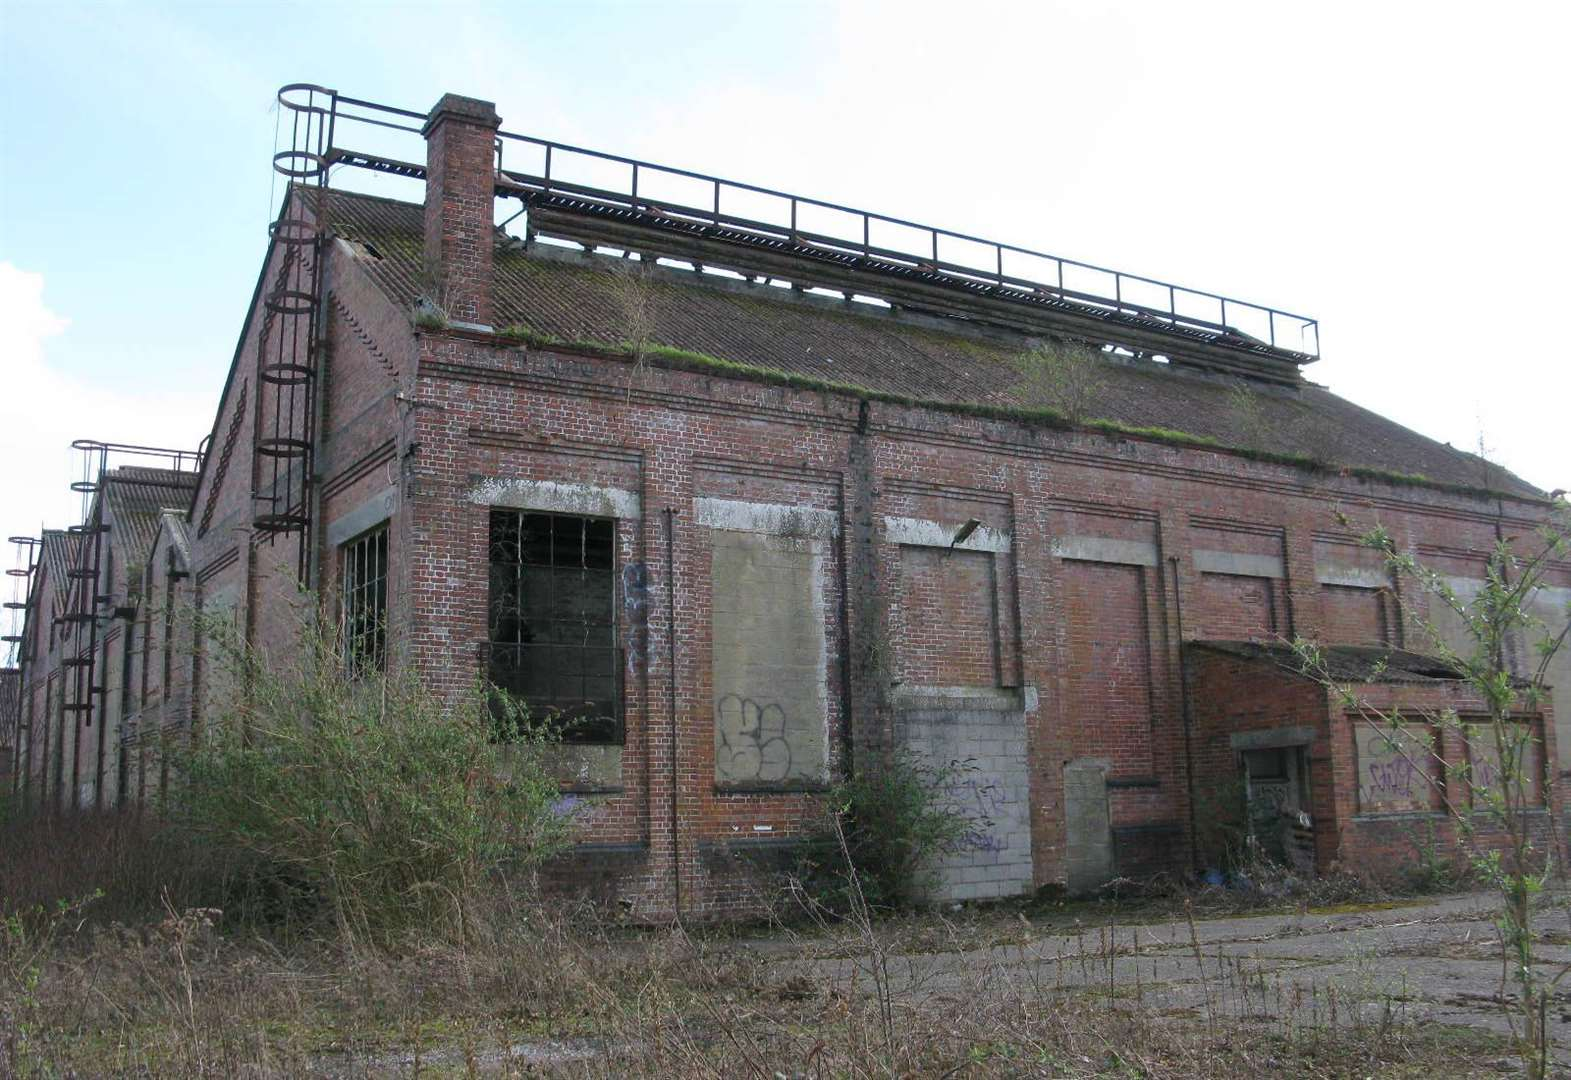 Plan to transform former colliery site